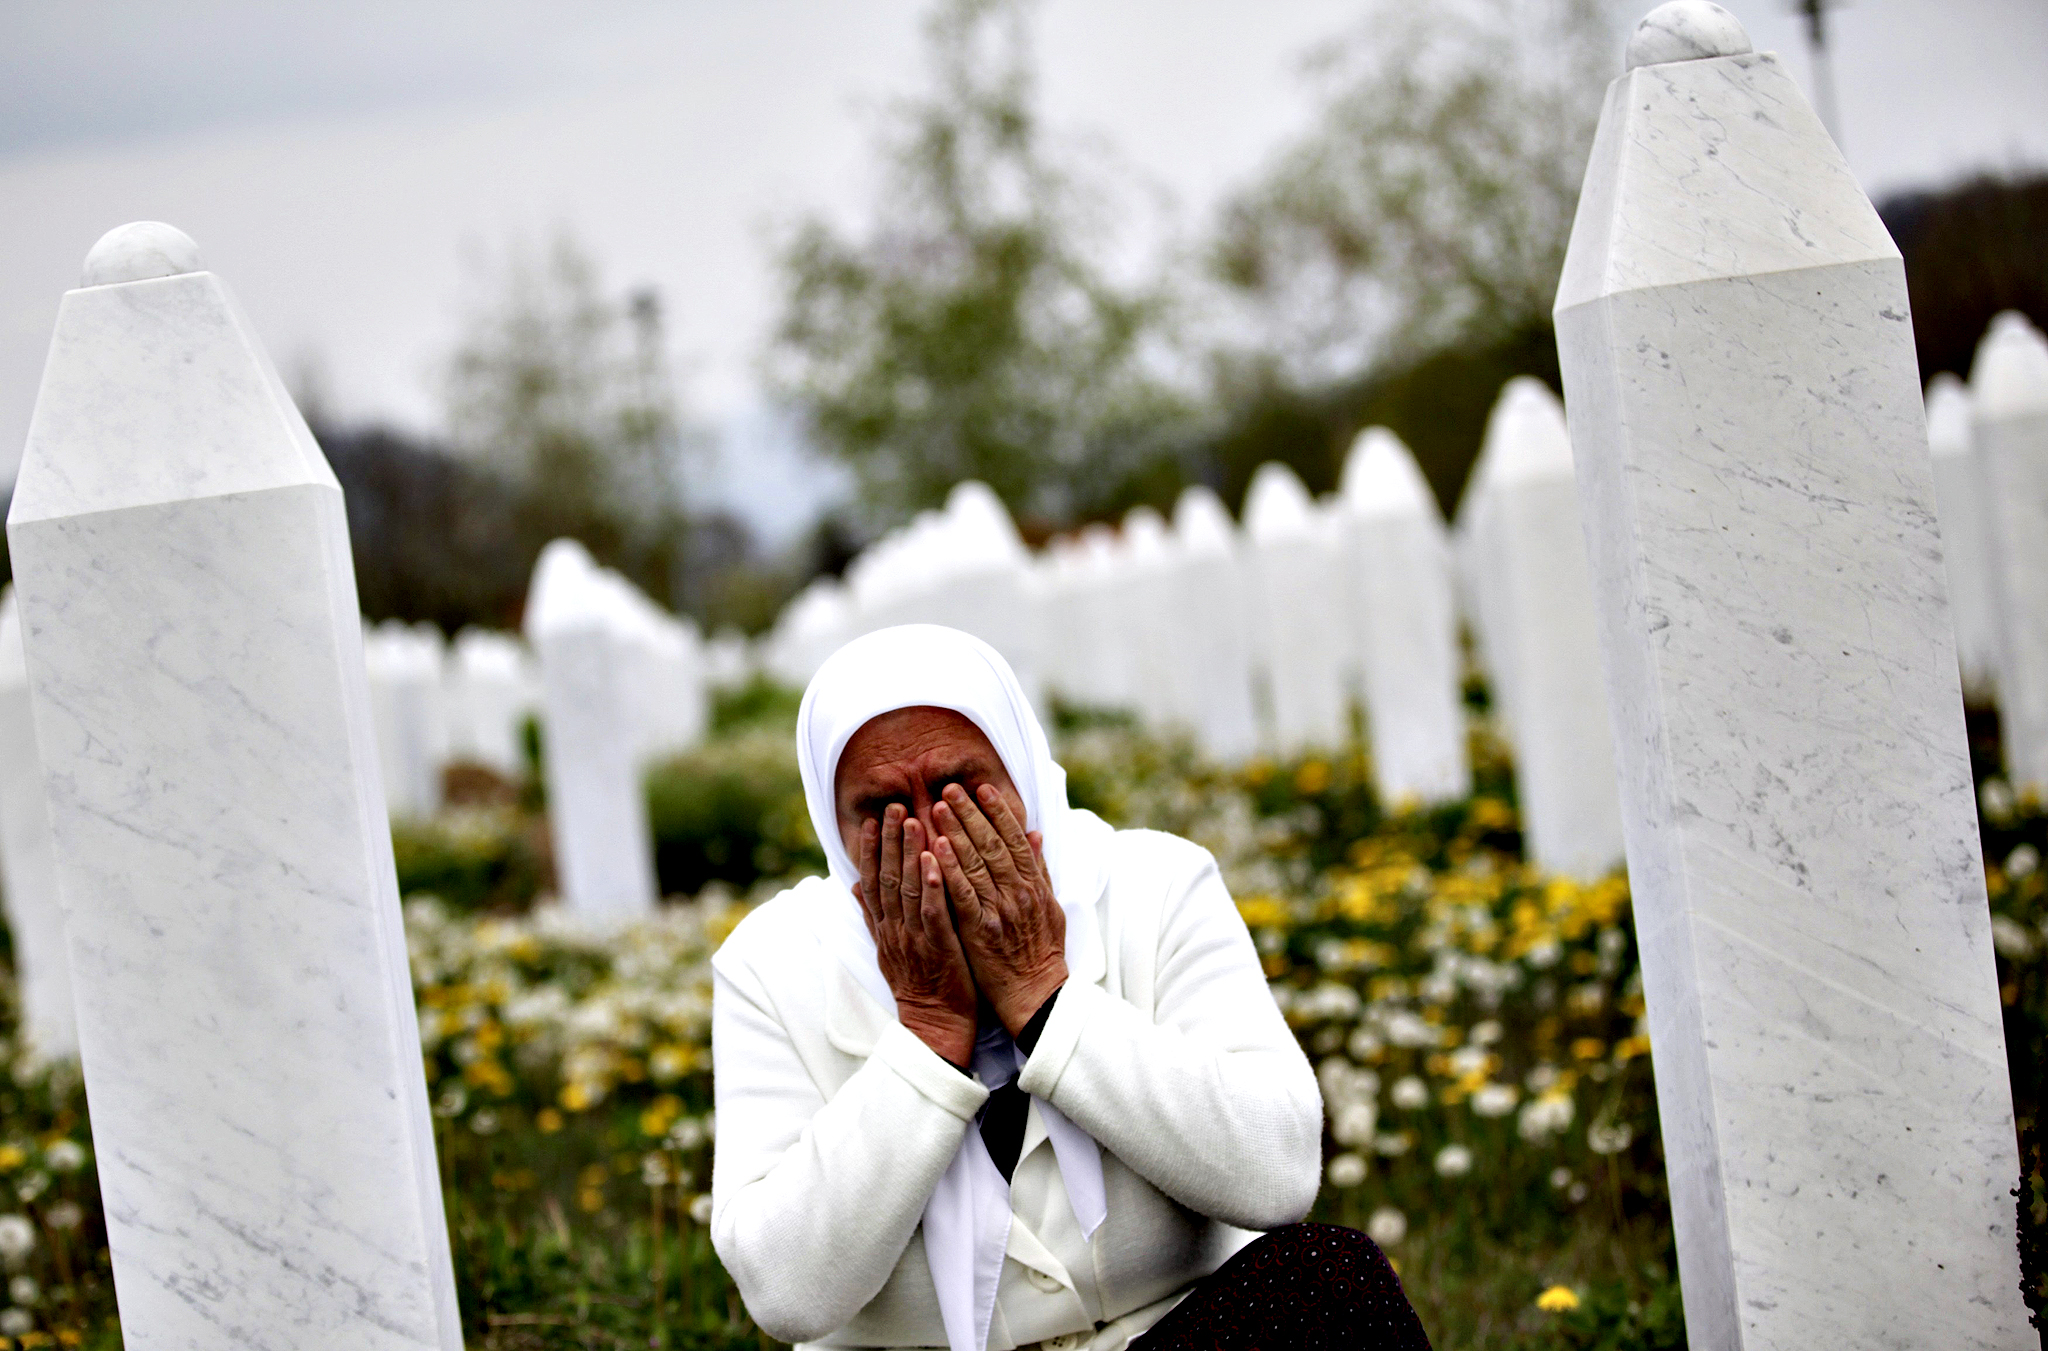 Mejra Dzogaz cries near the graves of her family members at the Memorial Center in Potocari April 7, 2014. Dzogaz lost her three sons, husband and father in the Srebrenica massacre. Survivors of the Srebrenica massacre are suing the Netherlands' government for failing to protect them from the rebel Serbs who killed some 8,000 men and boys in 1995. The case starting on Monday will determine the responsibility of the Dutch troops, under United Nations command, stationed in the eastern Bosnian town at the time of the killing.